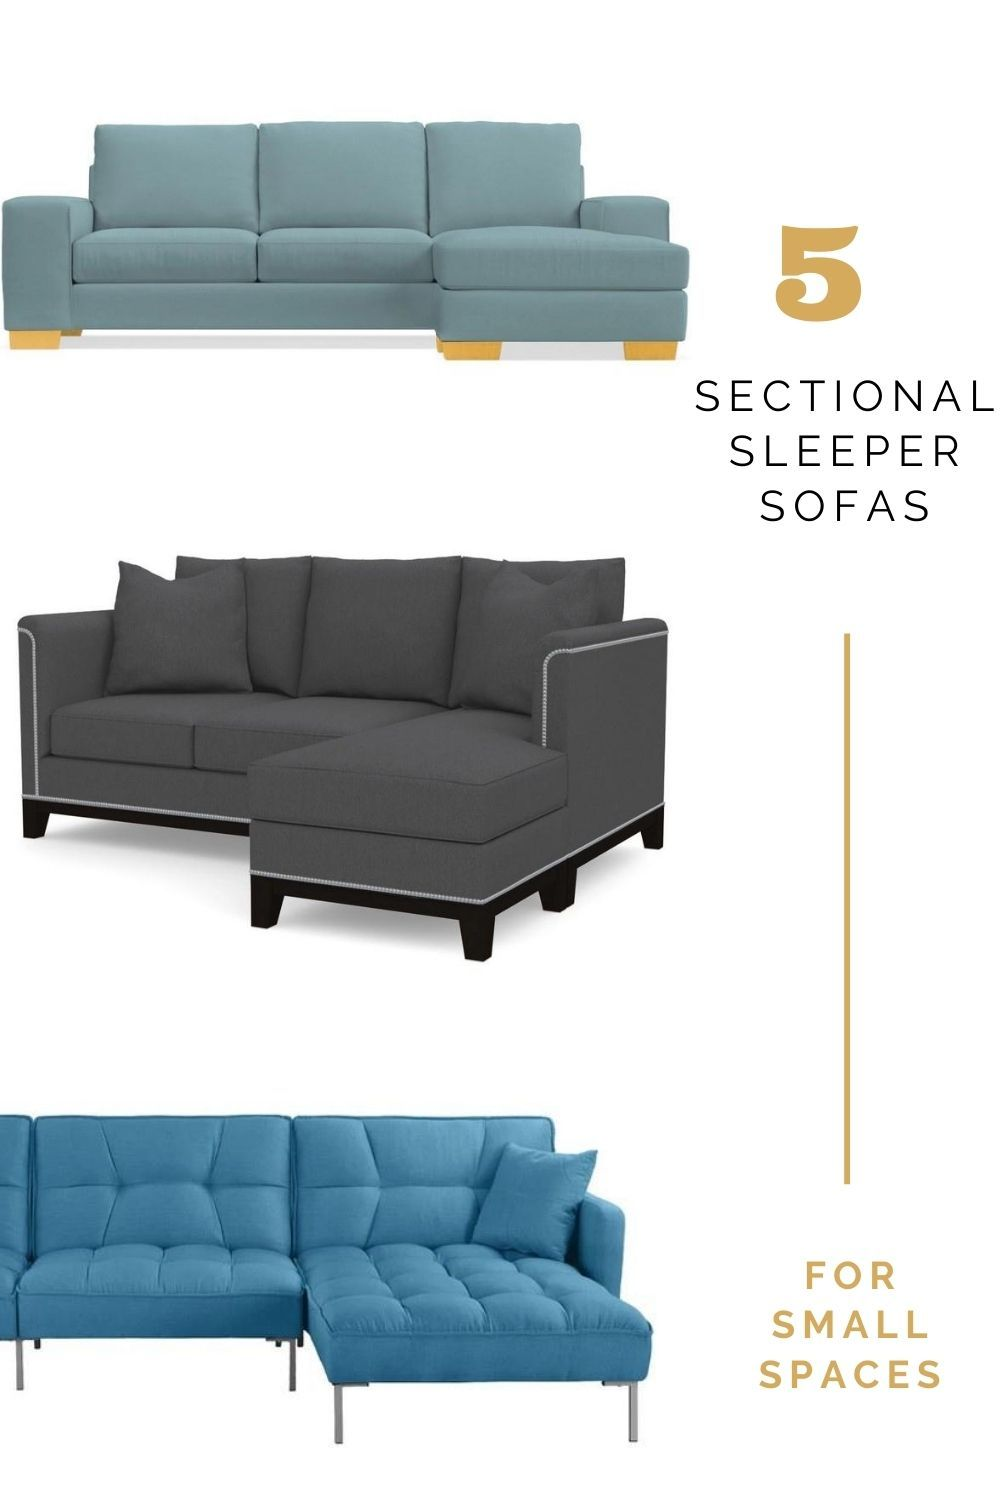 Small Sleeper Sectional Sofa For Small Spaces In 2020 Sectional Sleeper Sofa Sofas For Small Spaces Small Sofa Bed